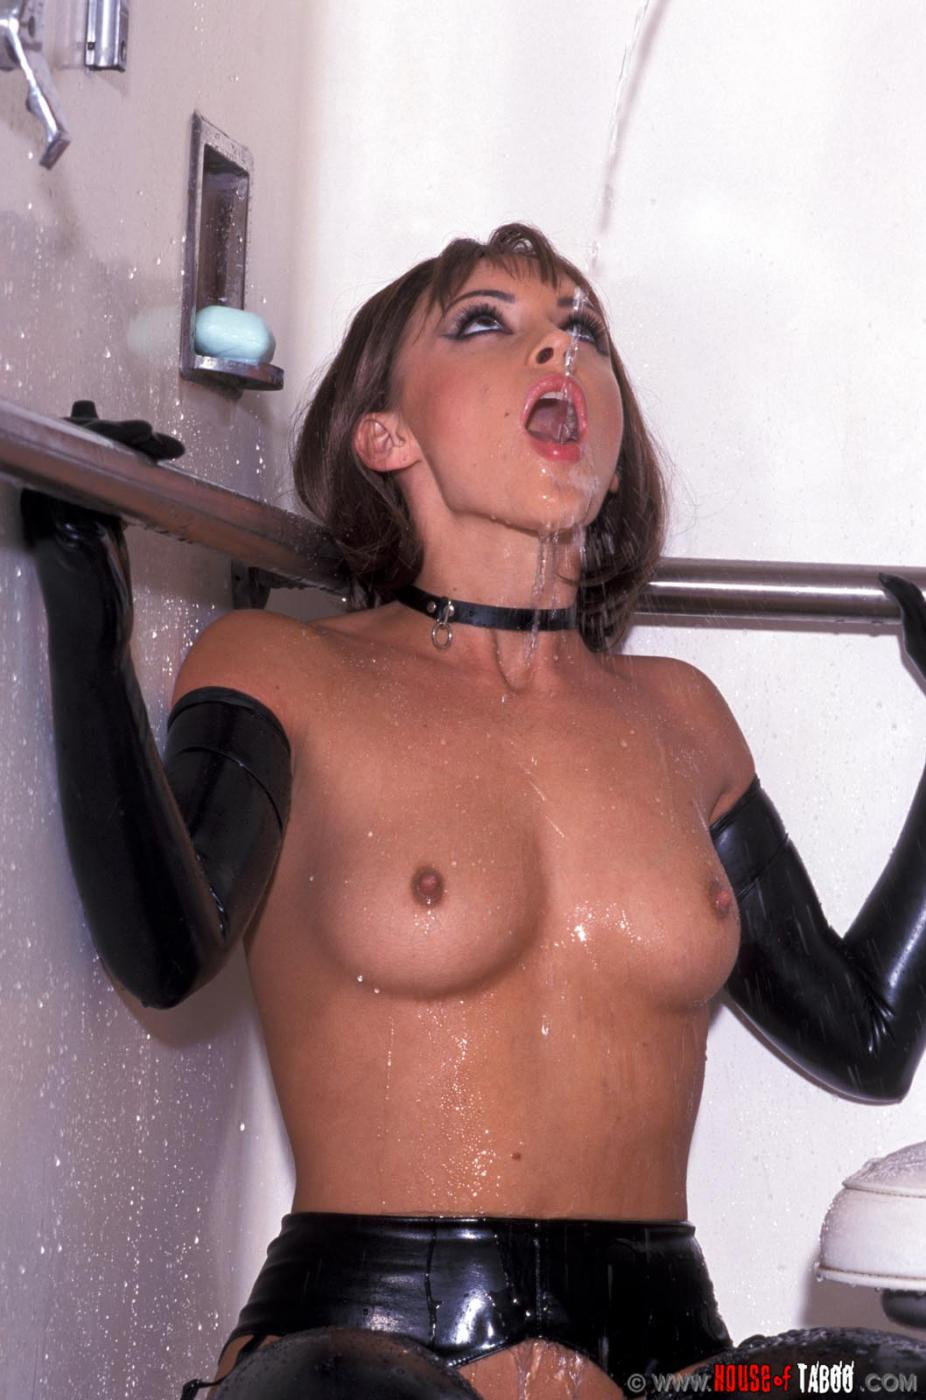 latex pissing galleries adult videos